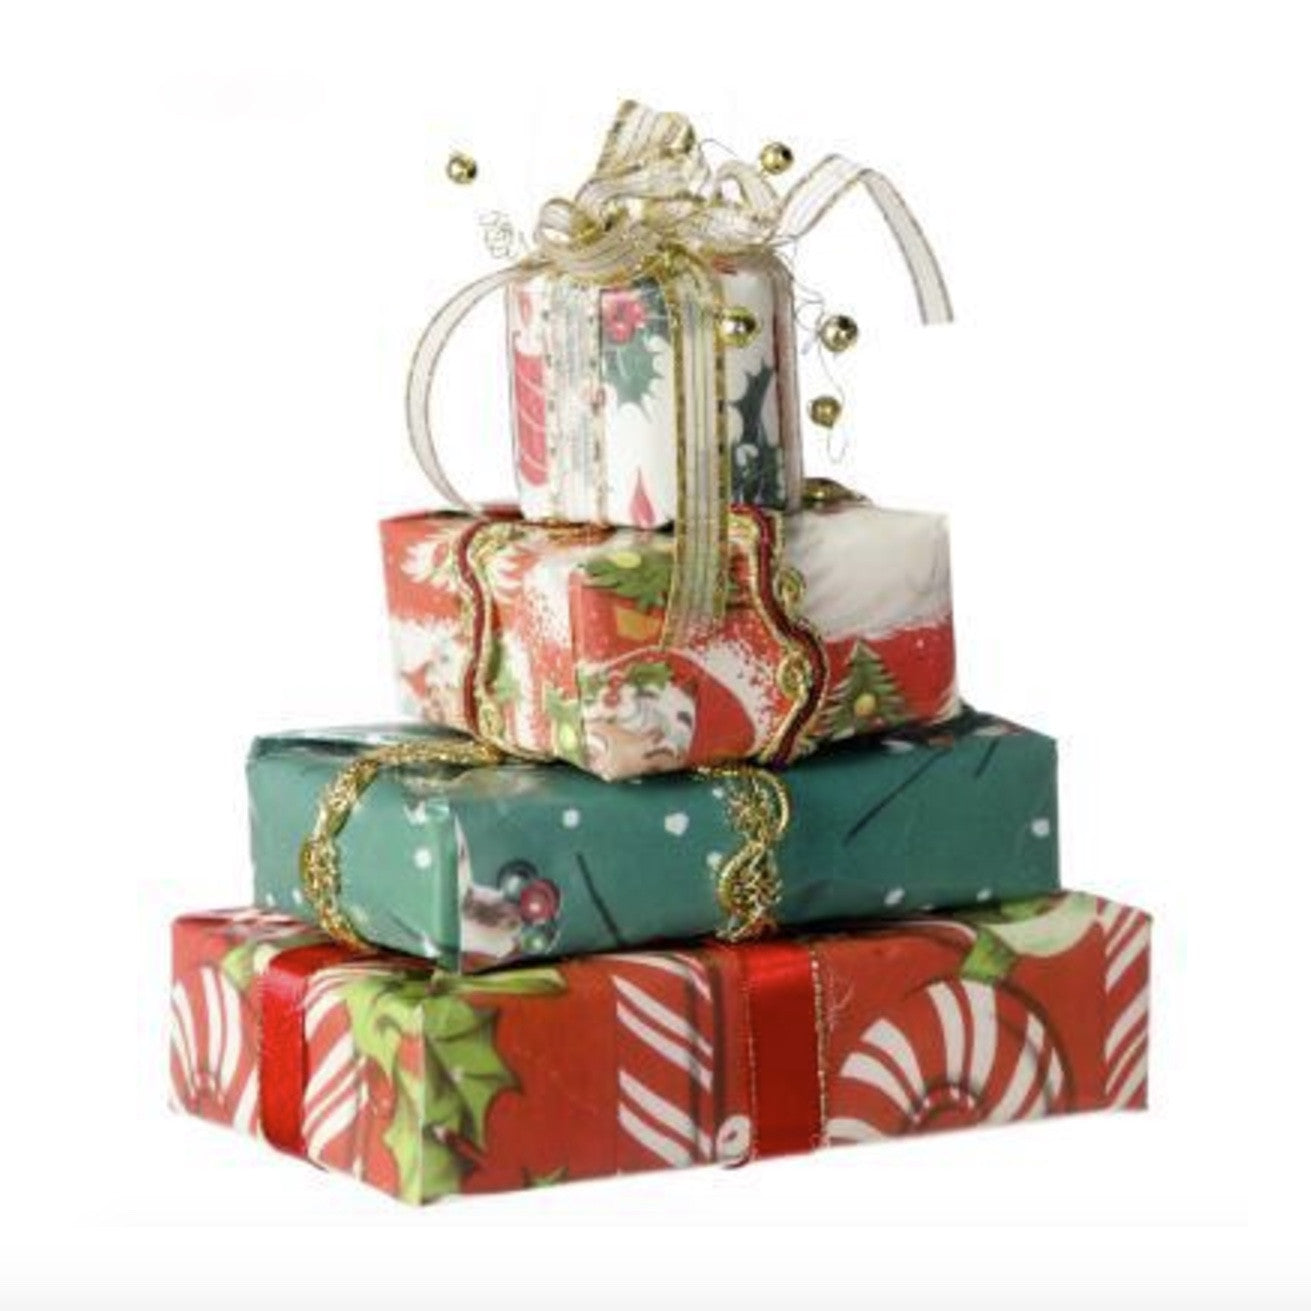 Stack of Gifts Paper Ornament -  Christmas - Floridus Design - Putti Fine Furnishings Toronto Canada